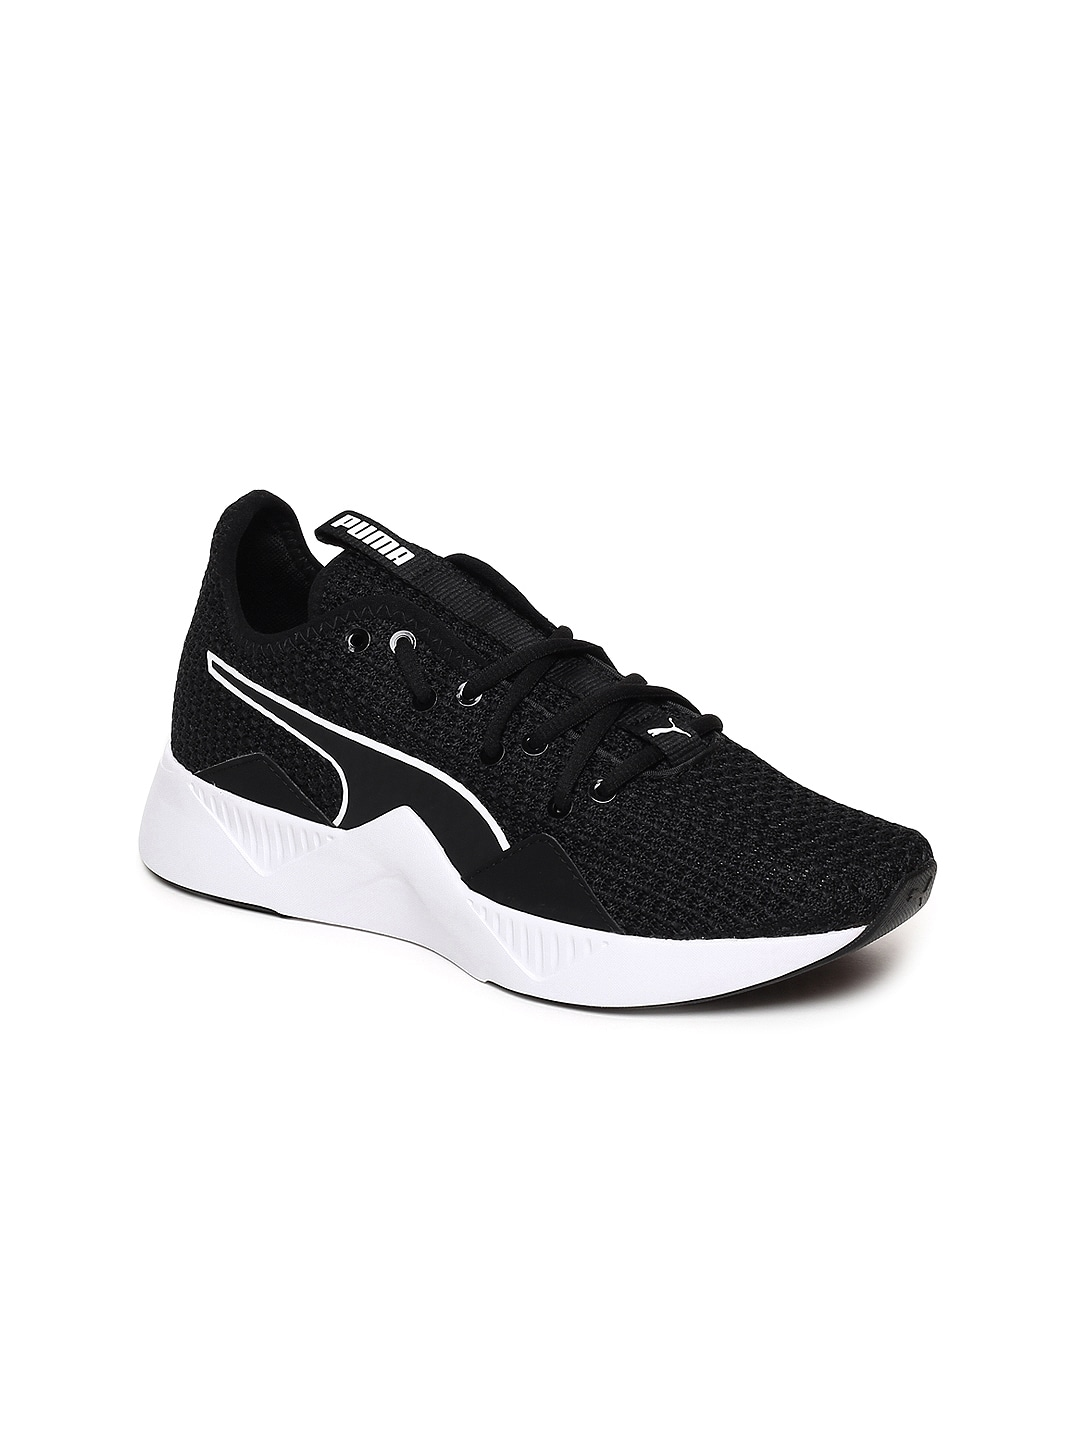 144a41f4425c Sports Shoes for Women - Buy Women Sports Shoes Online